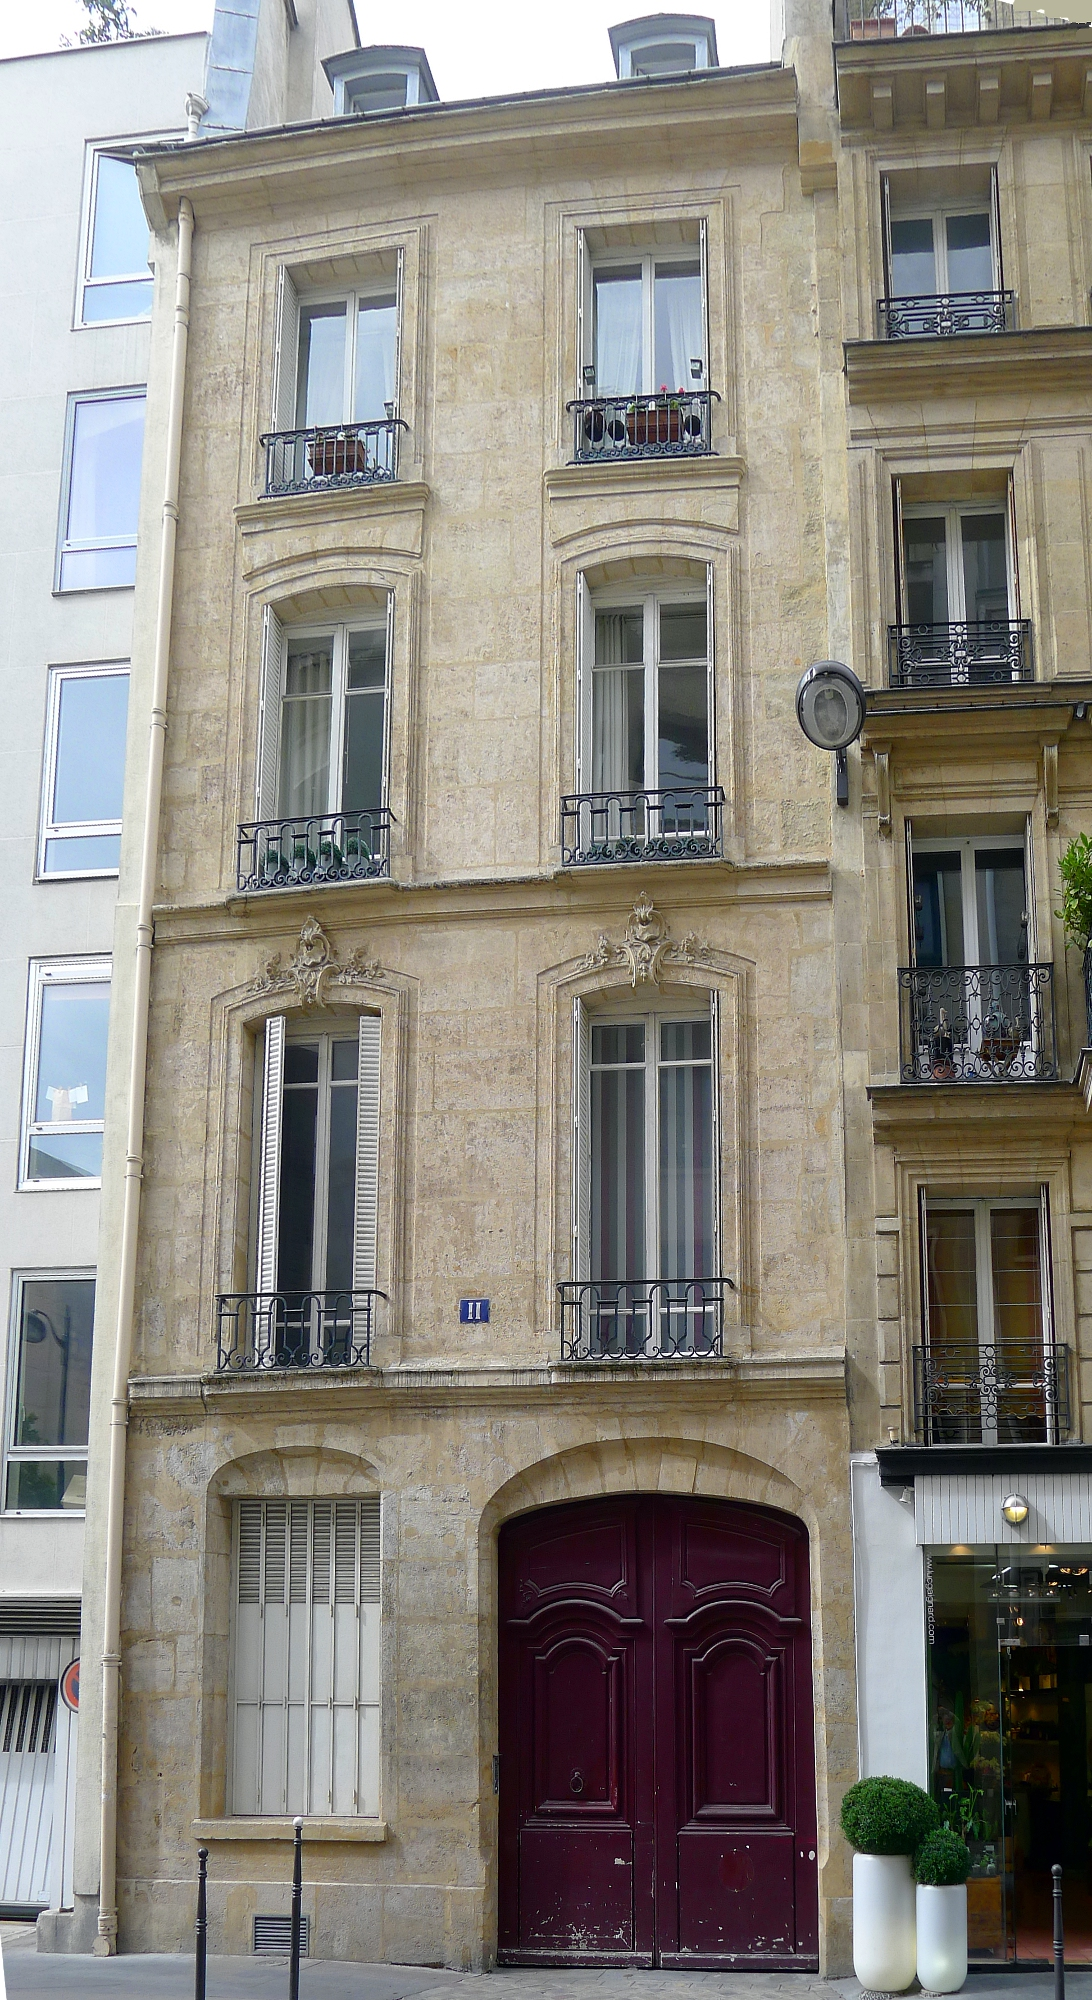 No. 11 Rue de Boloine, Paris.